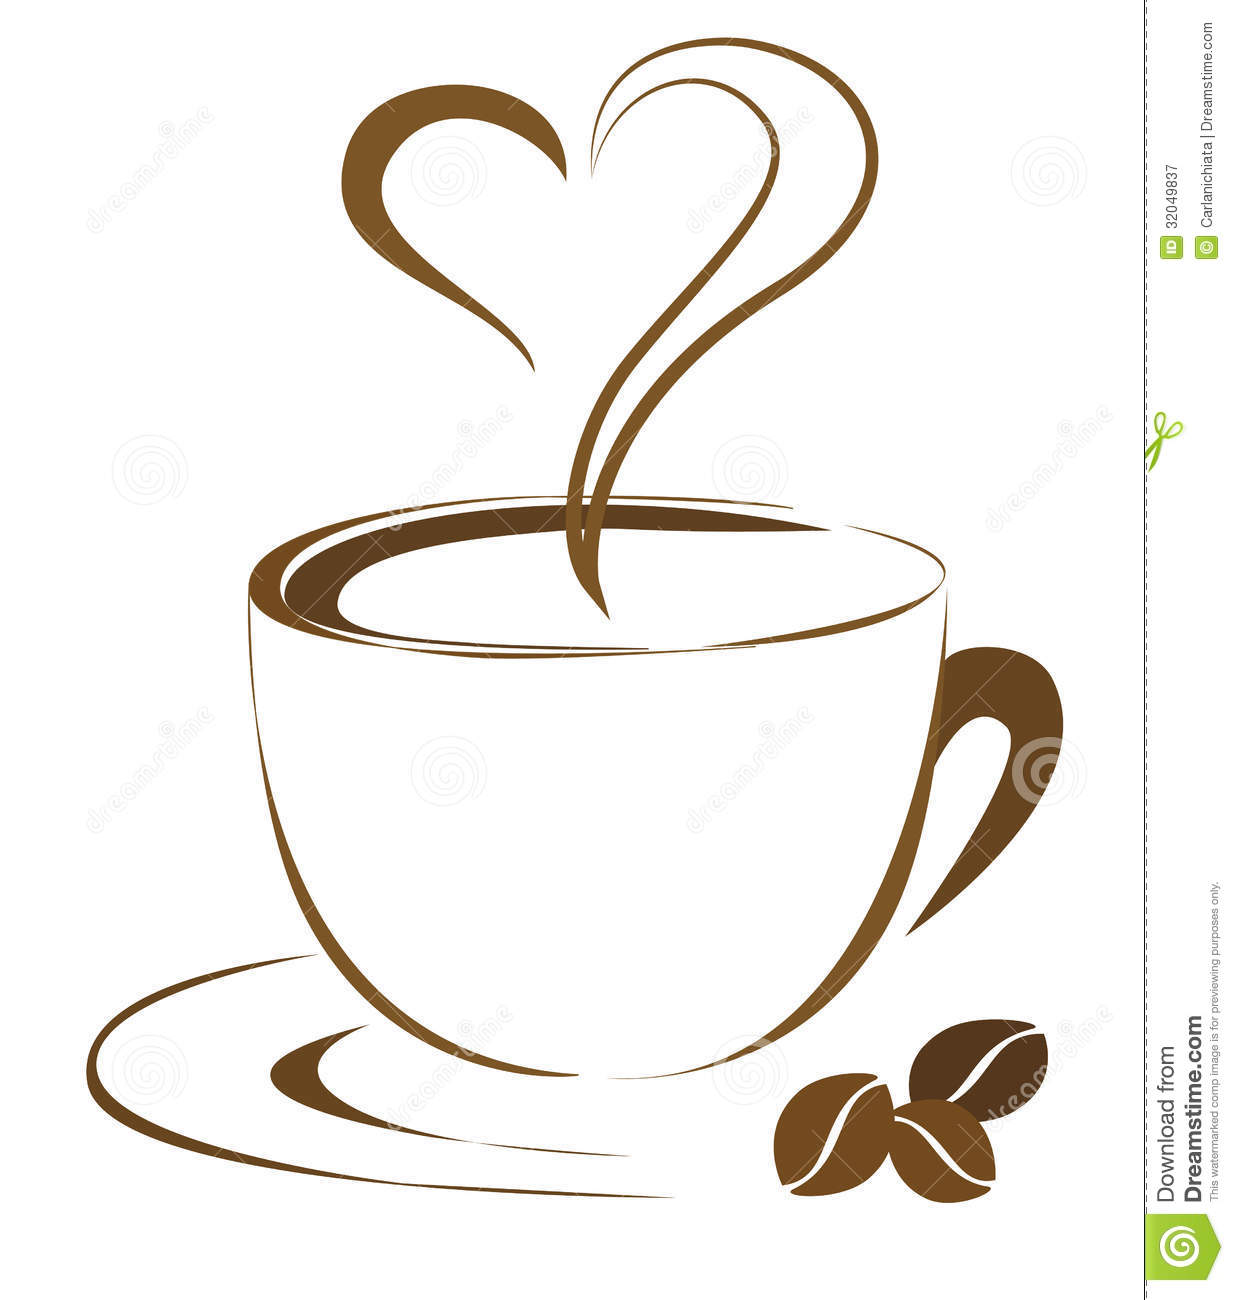 Coffe coffee cups heart. Cafe clipart cafeteria building